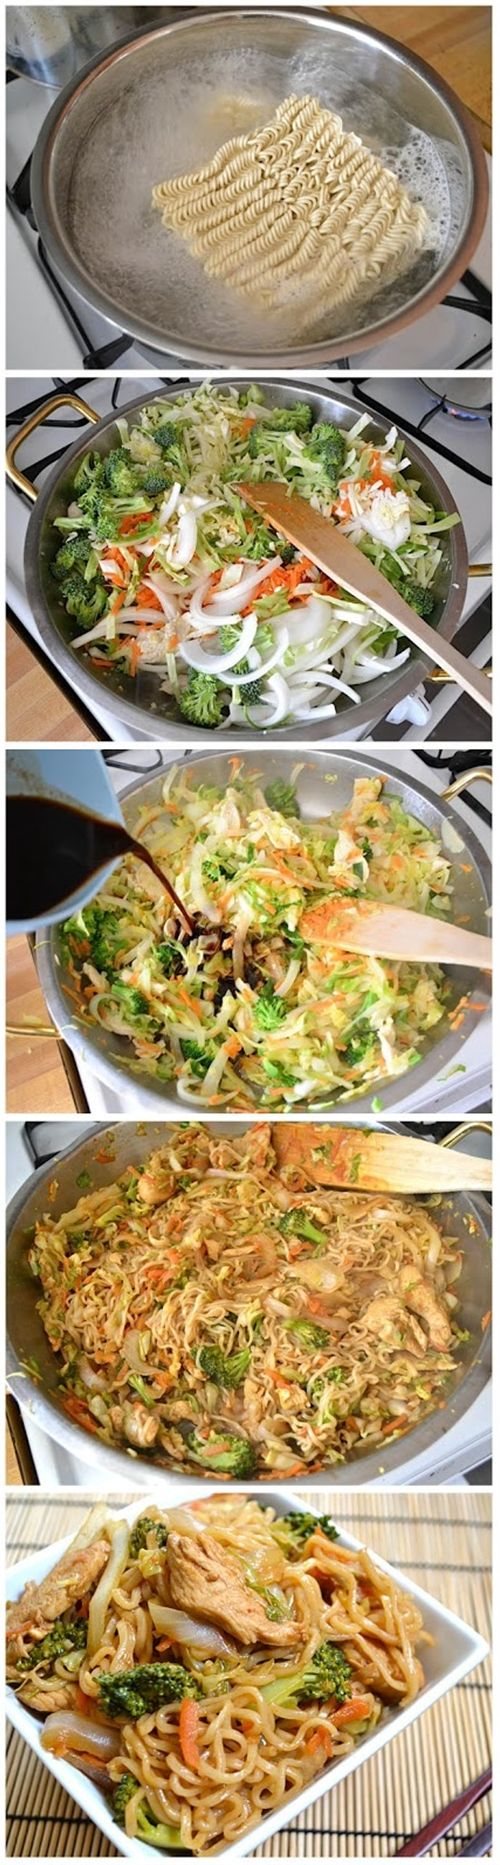 Chicken yakisoba - I've made versions of this before with great success.   I usually have all these ingredients are on hand (rice noodles instead) so this is a good meal to make last minute.   Must try a veggie version...